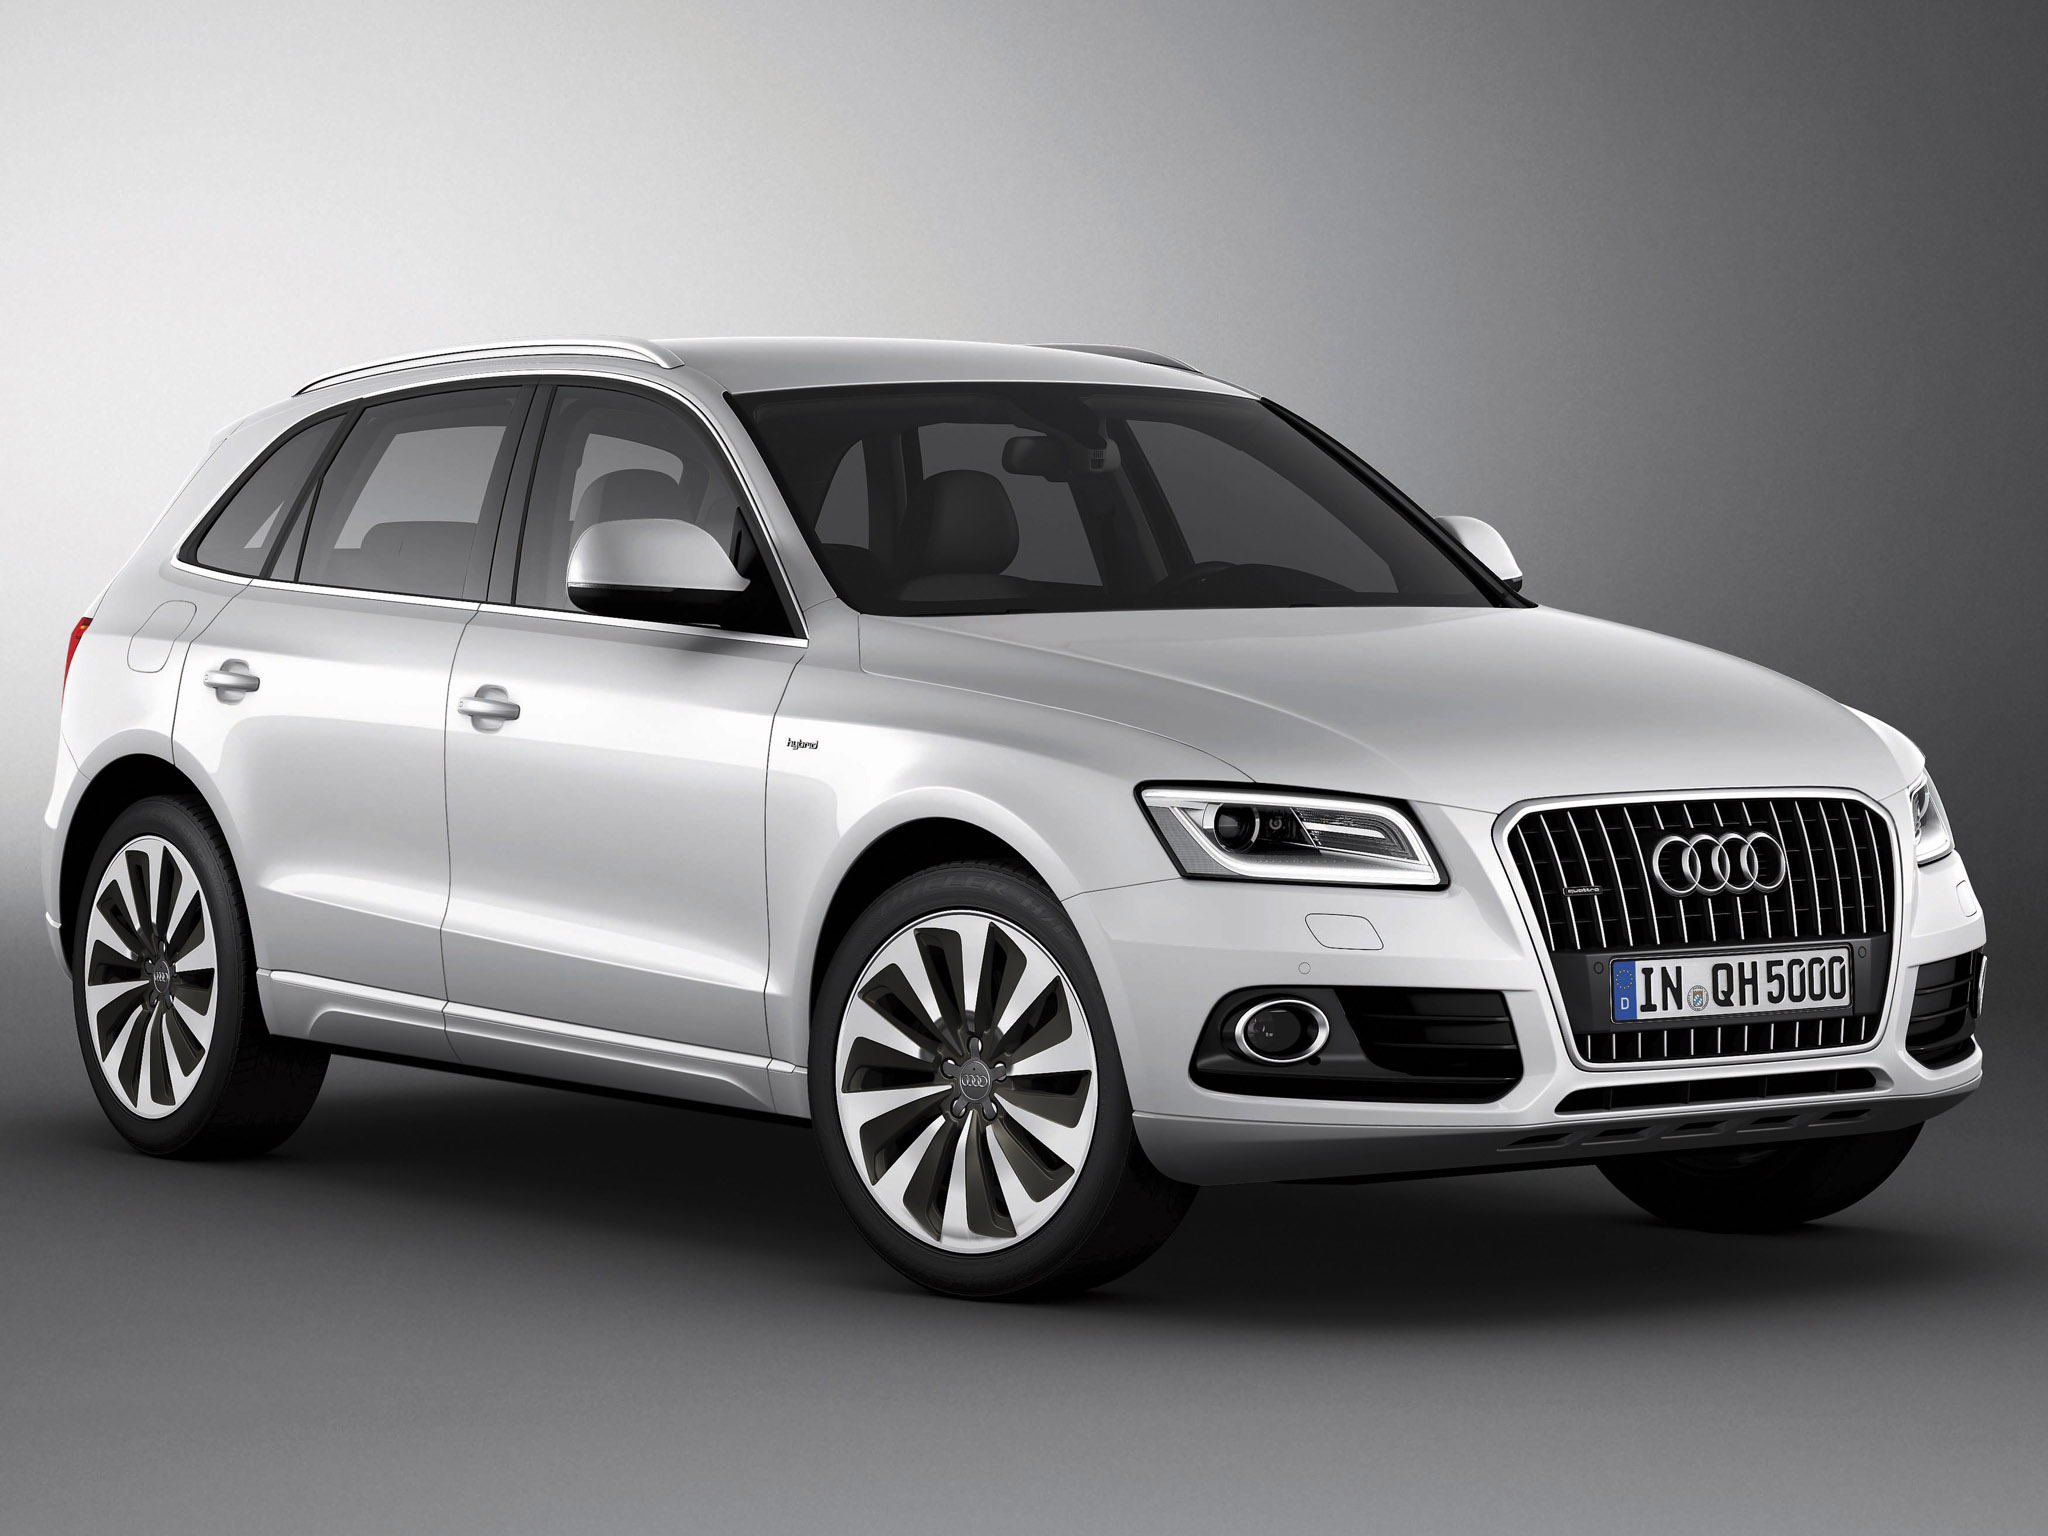 audi q5 hybrid quattro 2012 audi q5 hybrid quattro 2012 photo 06 car in pictures car photo. Black Bedroom Furniture Sets. Home Design Ideas